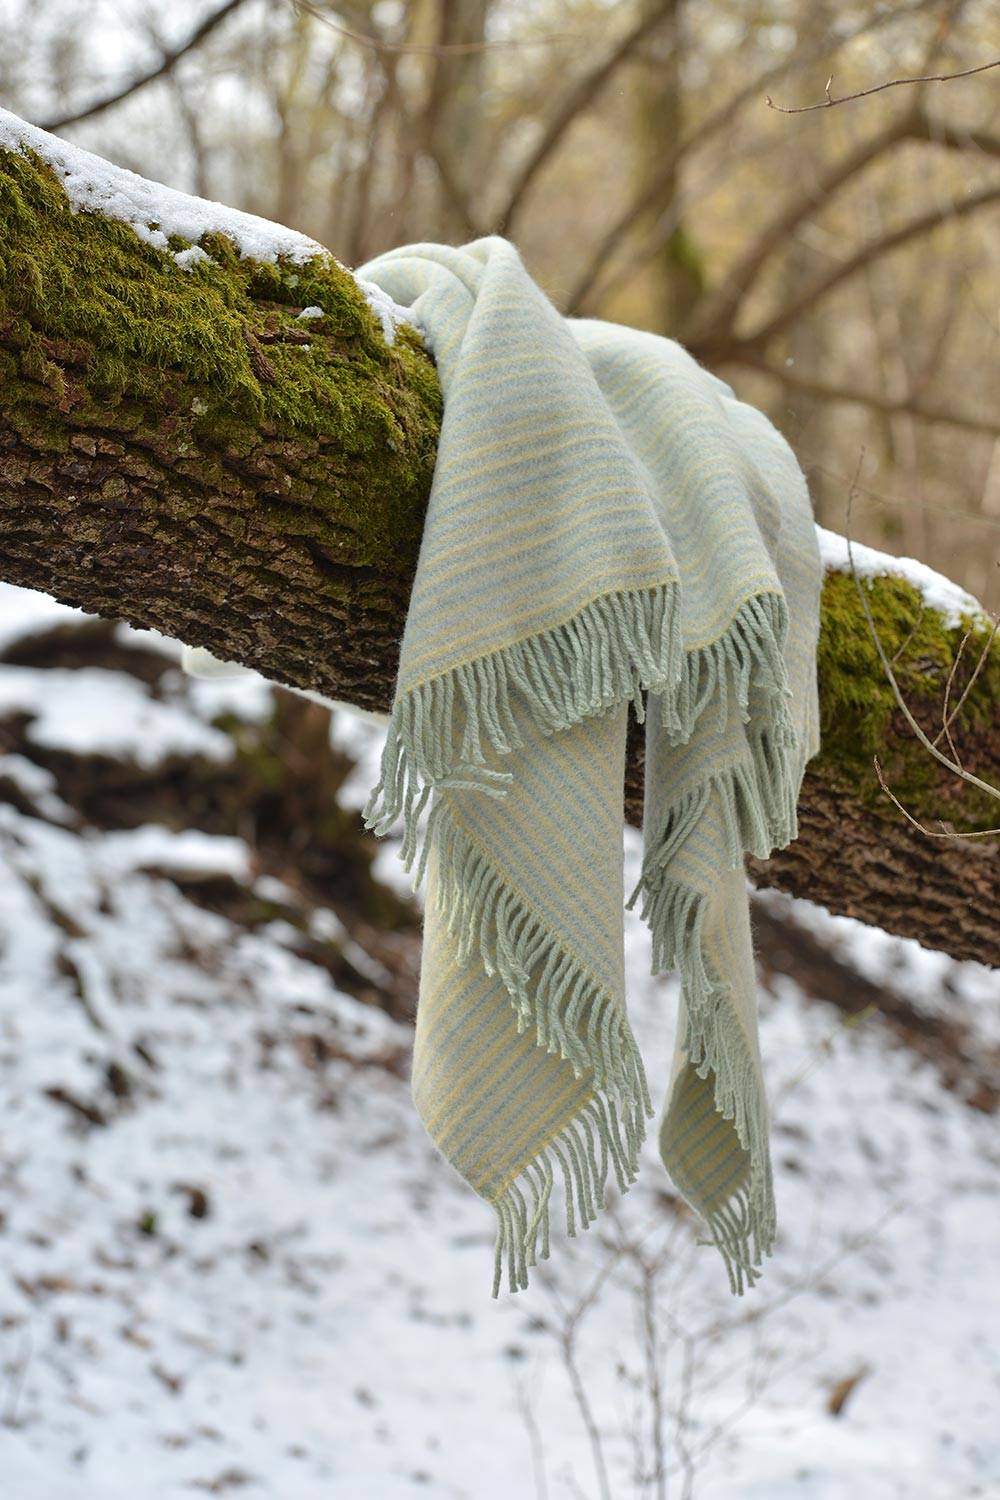 mint colored wool blanket on a branch in the winter forest